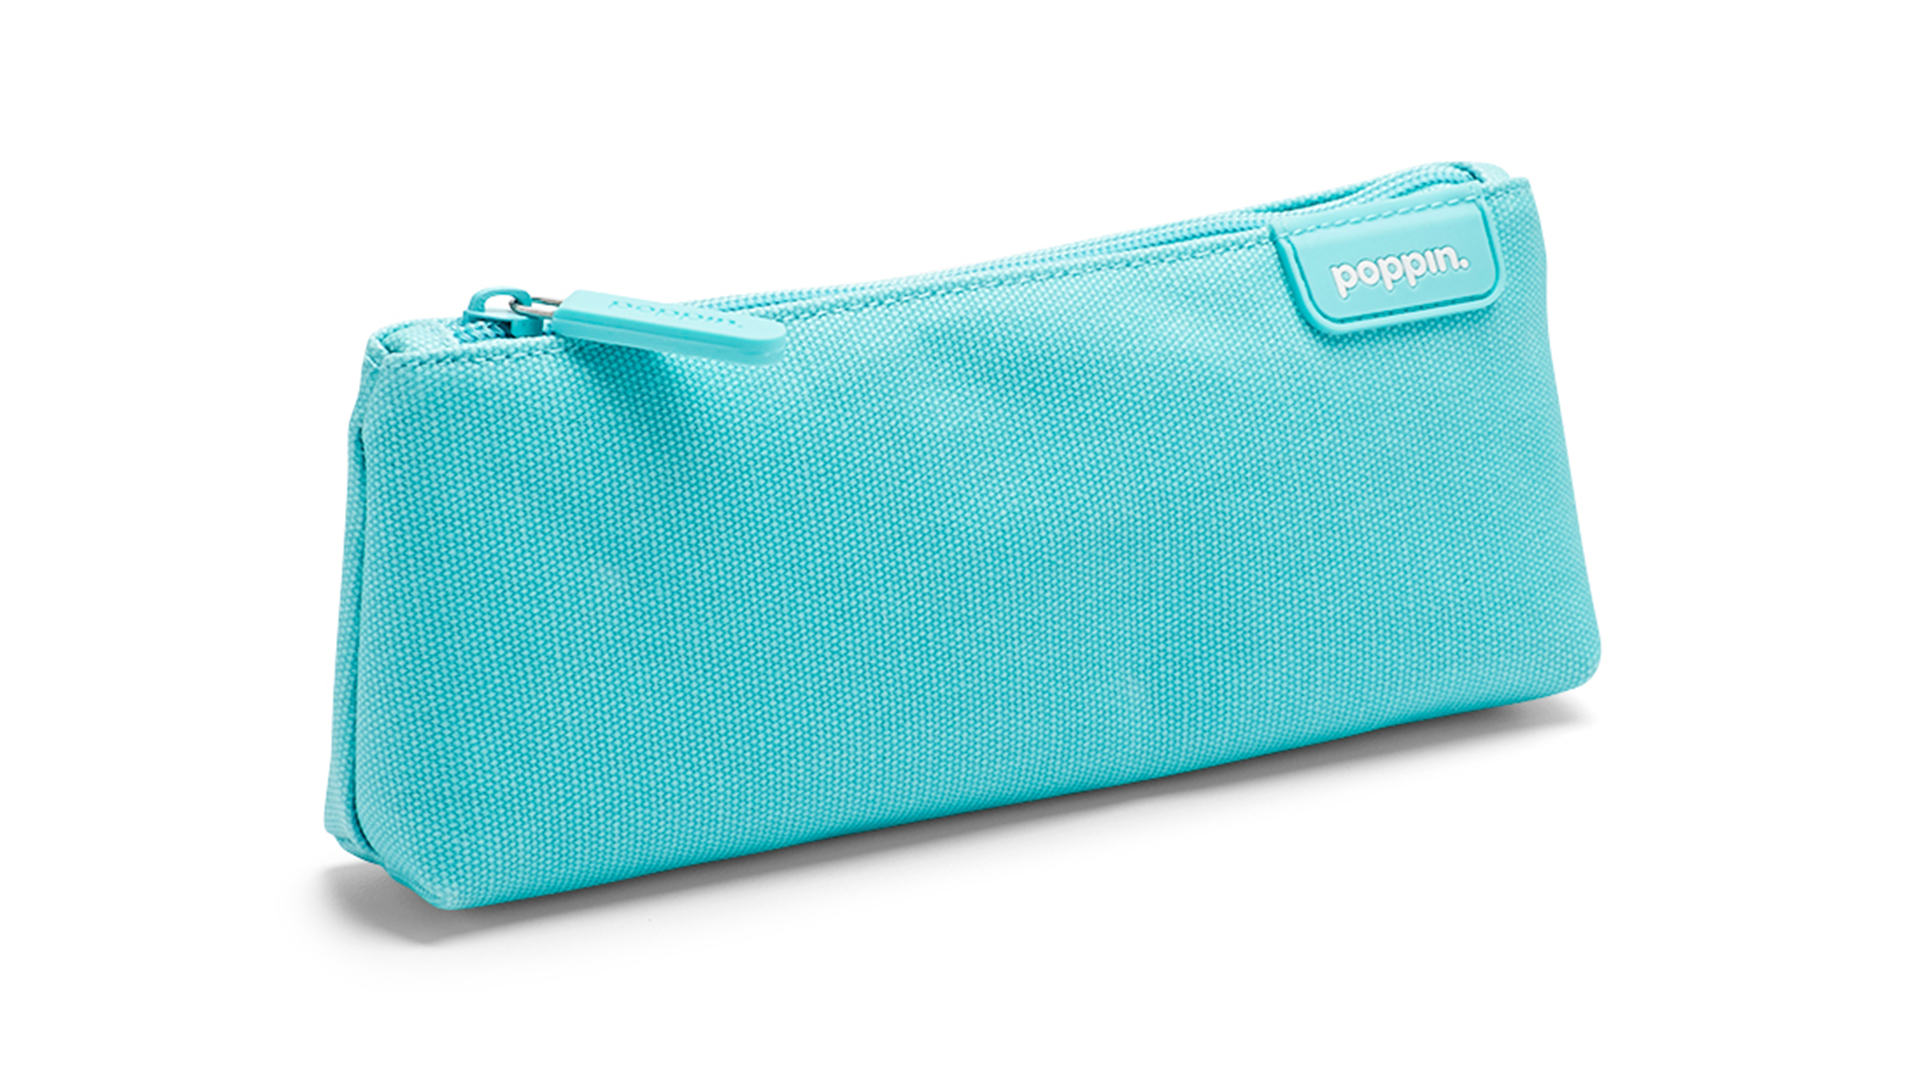 This aqua pencil case from Poppin is a must-have school item